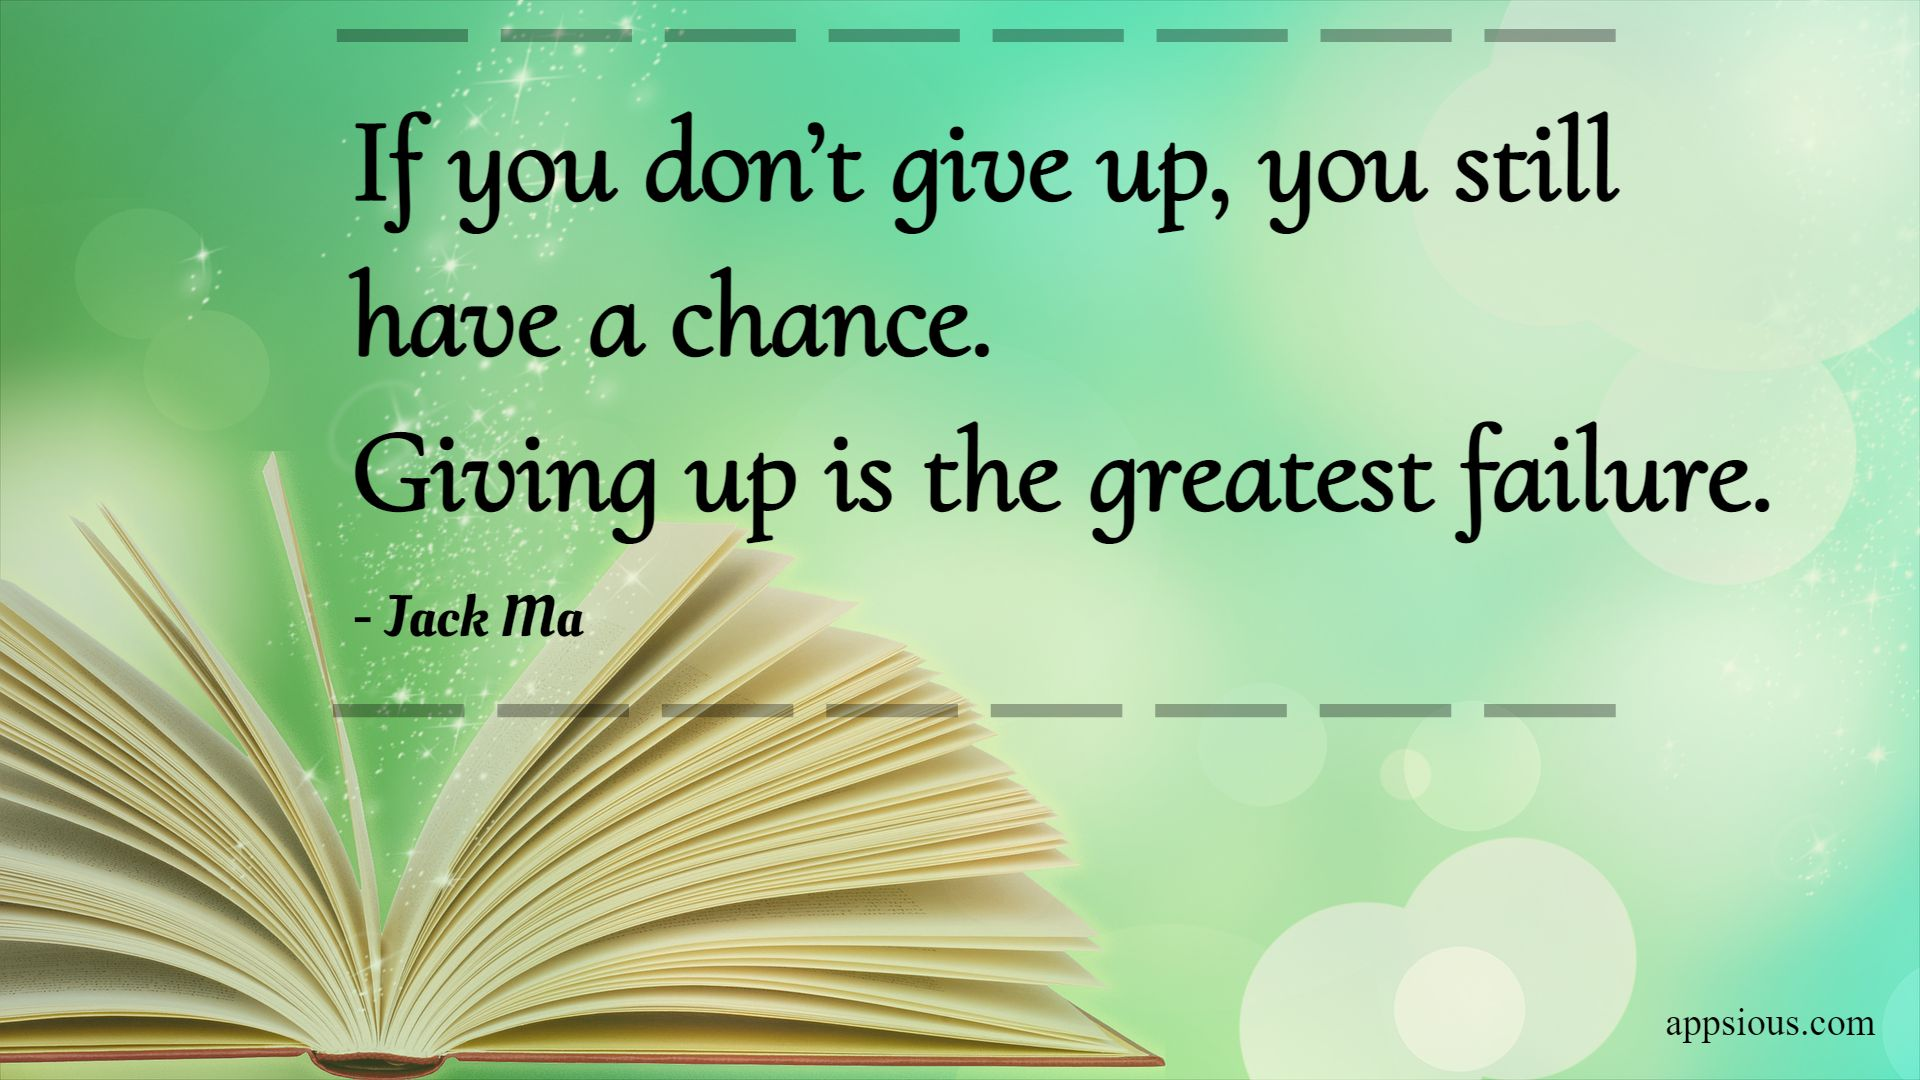 If you don't give up, you still have a chance. Giving up is the greatest failure.